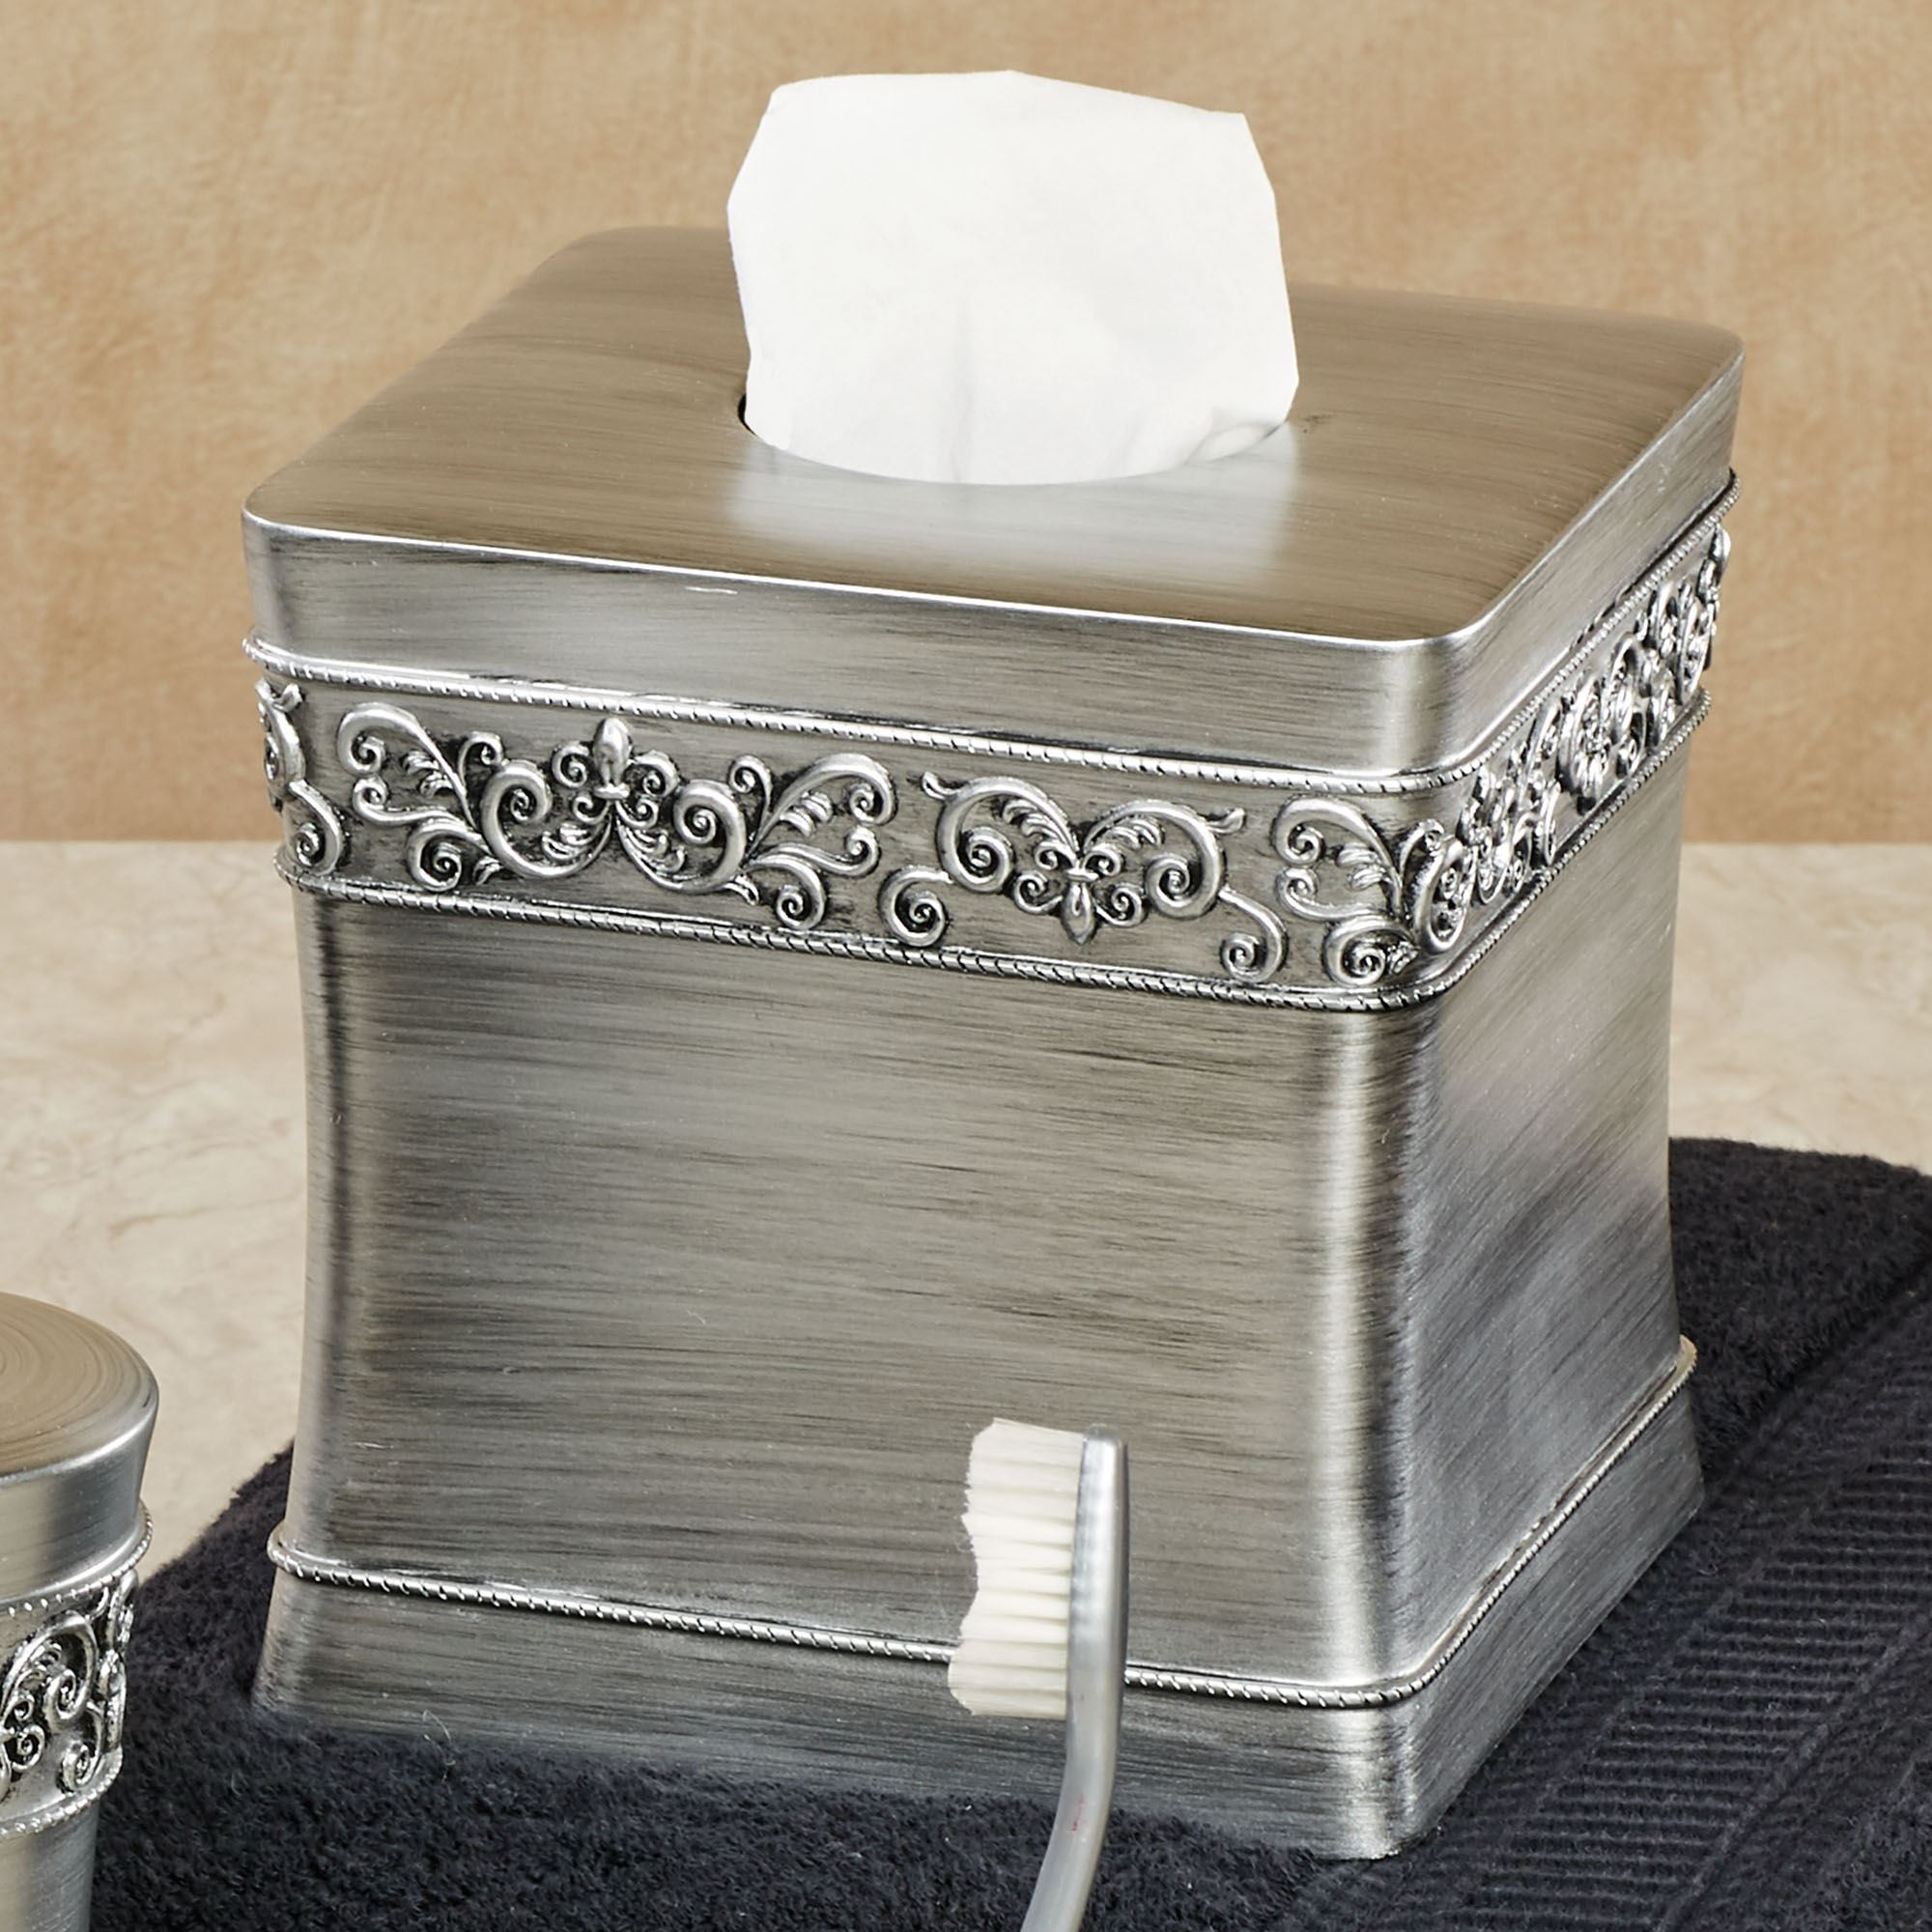 Murano Brushed Silver Bath Accessories - Brushed silver bathroom accessories